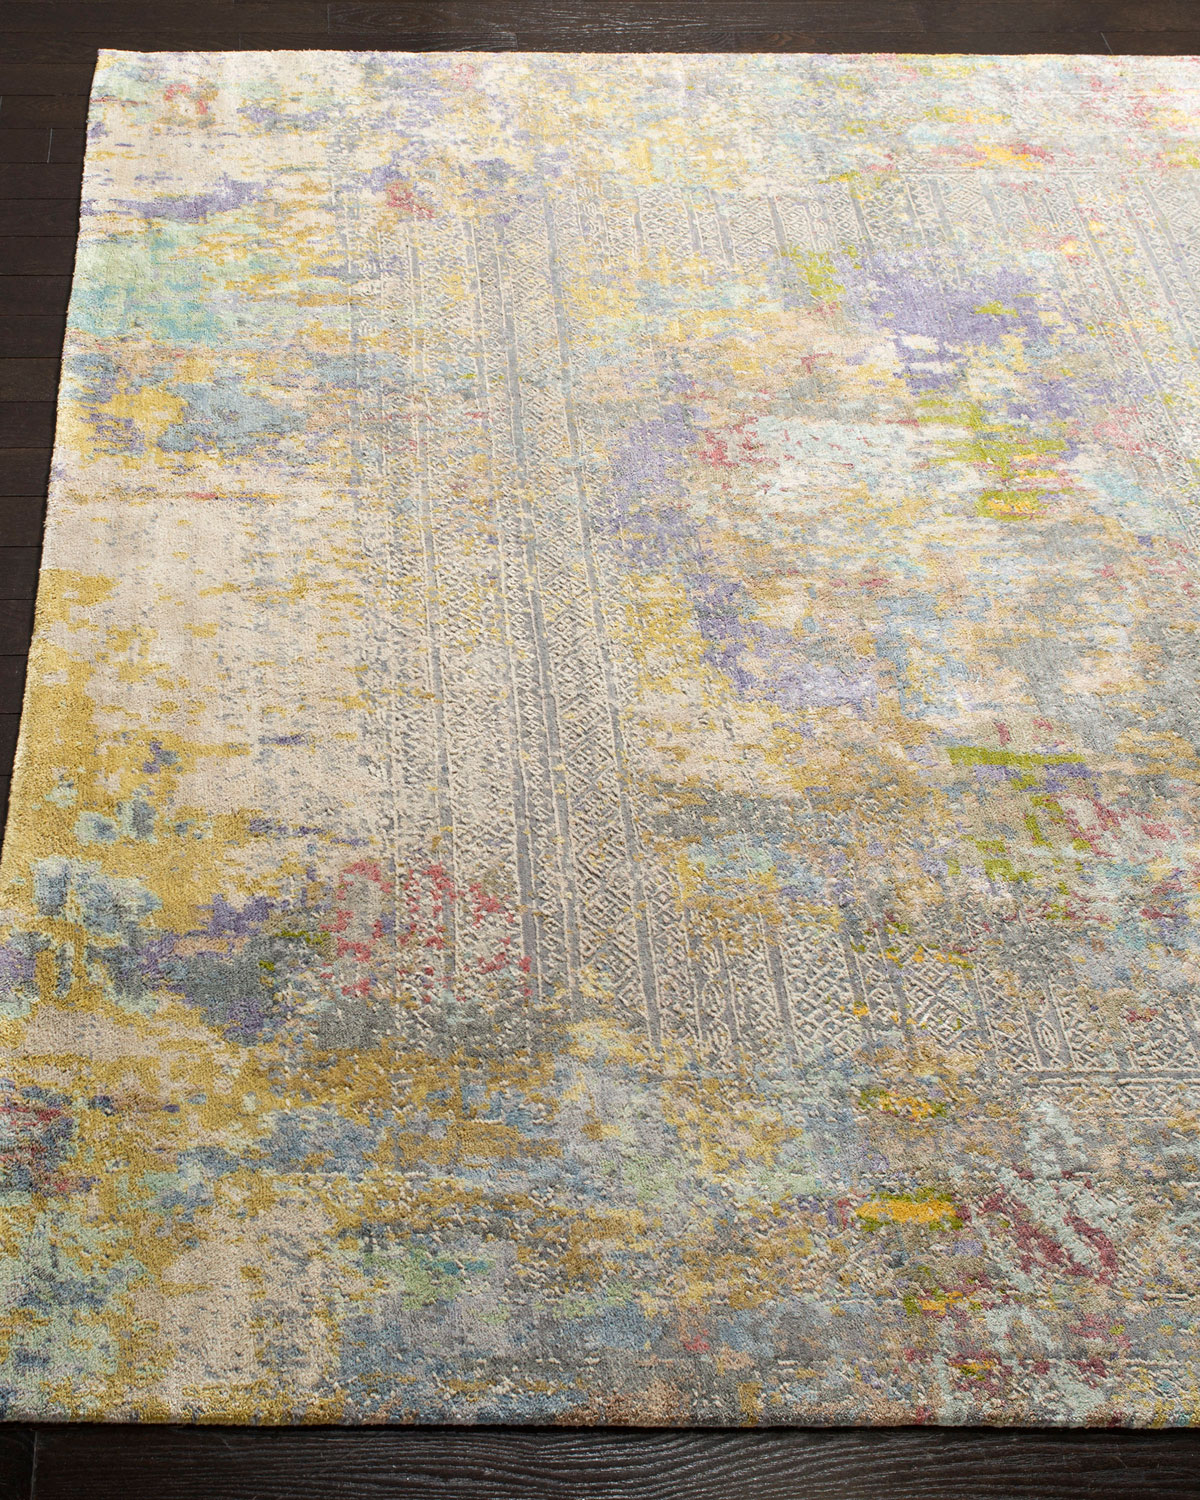 Safavieh Weston Hand-Knotted Wool Rug